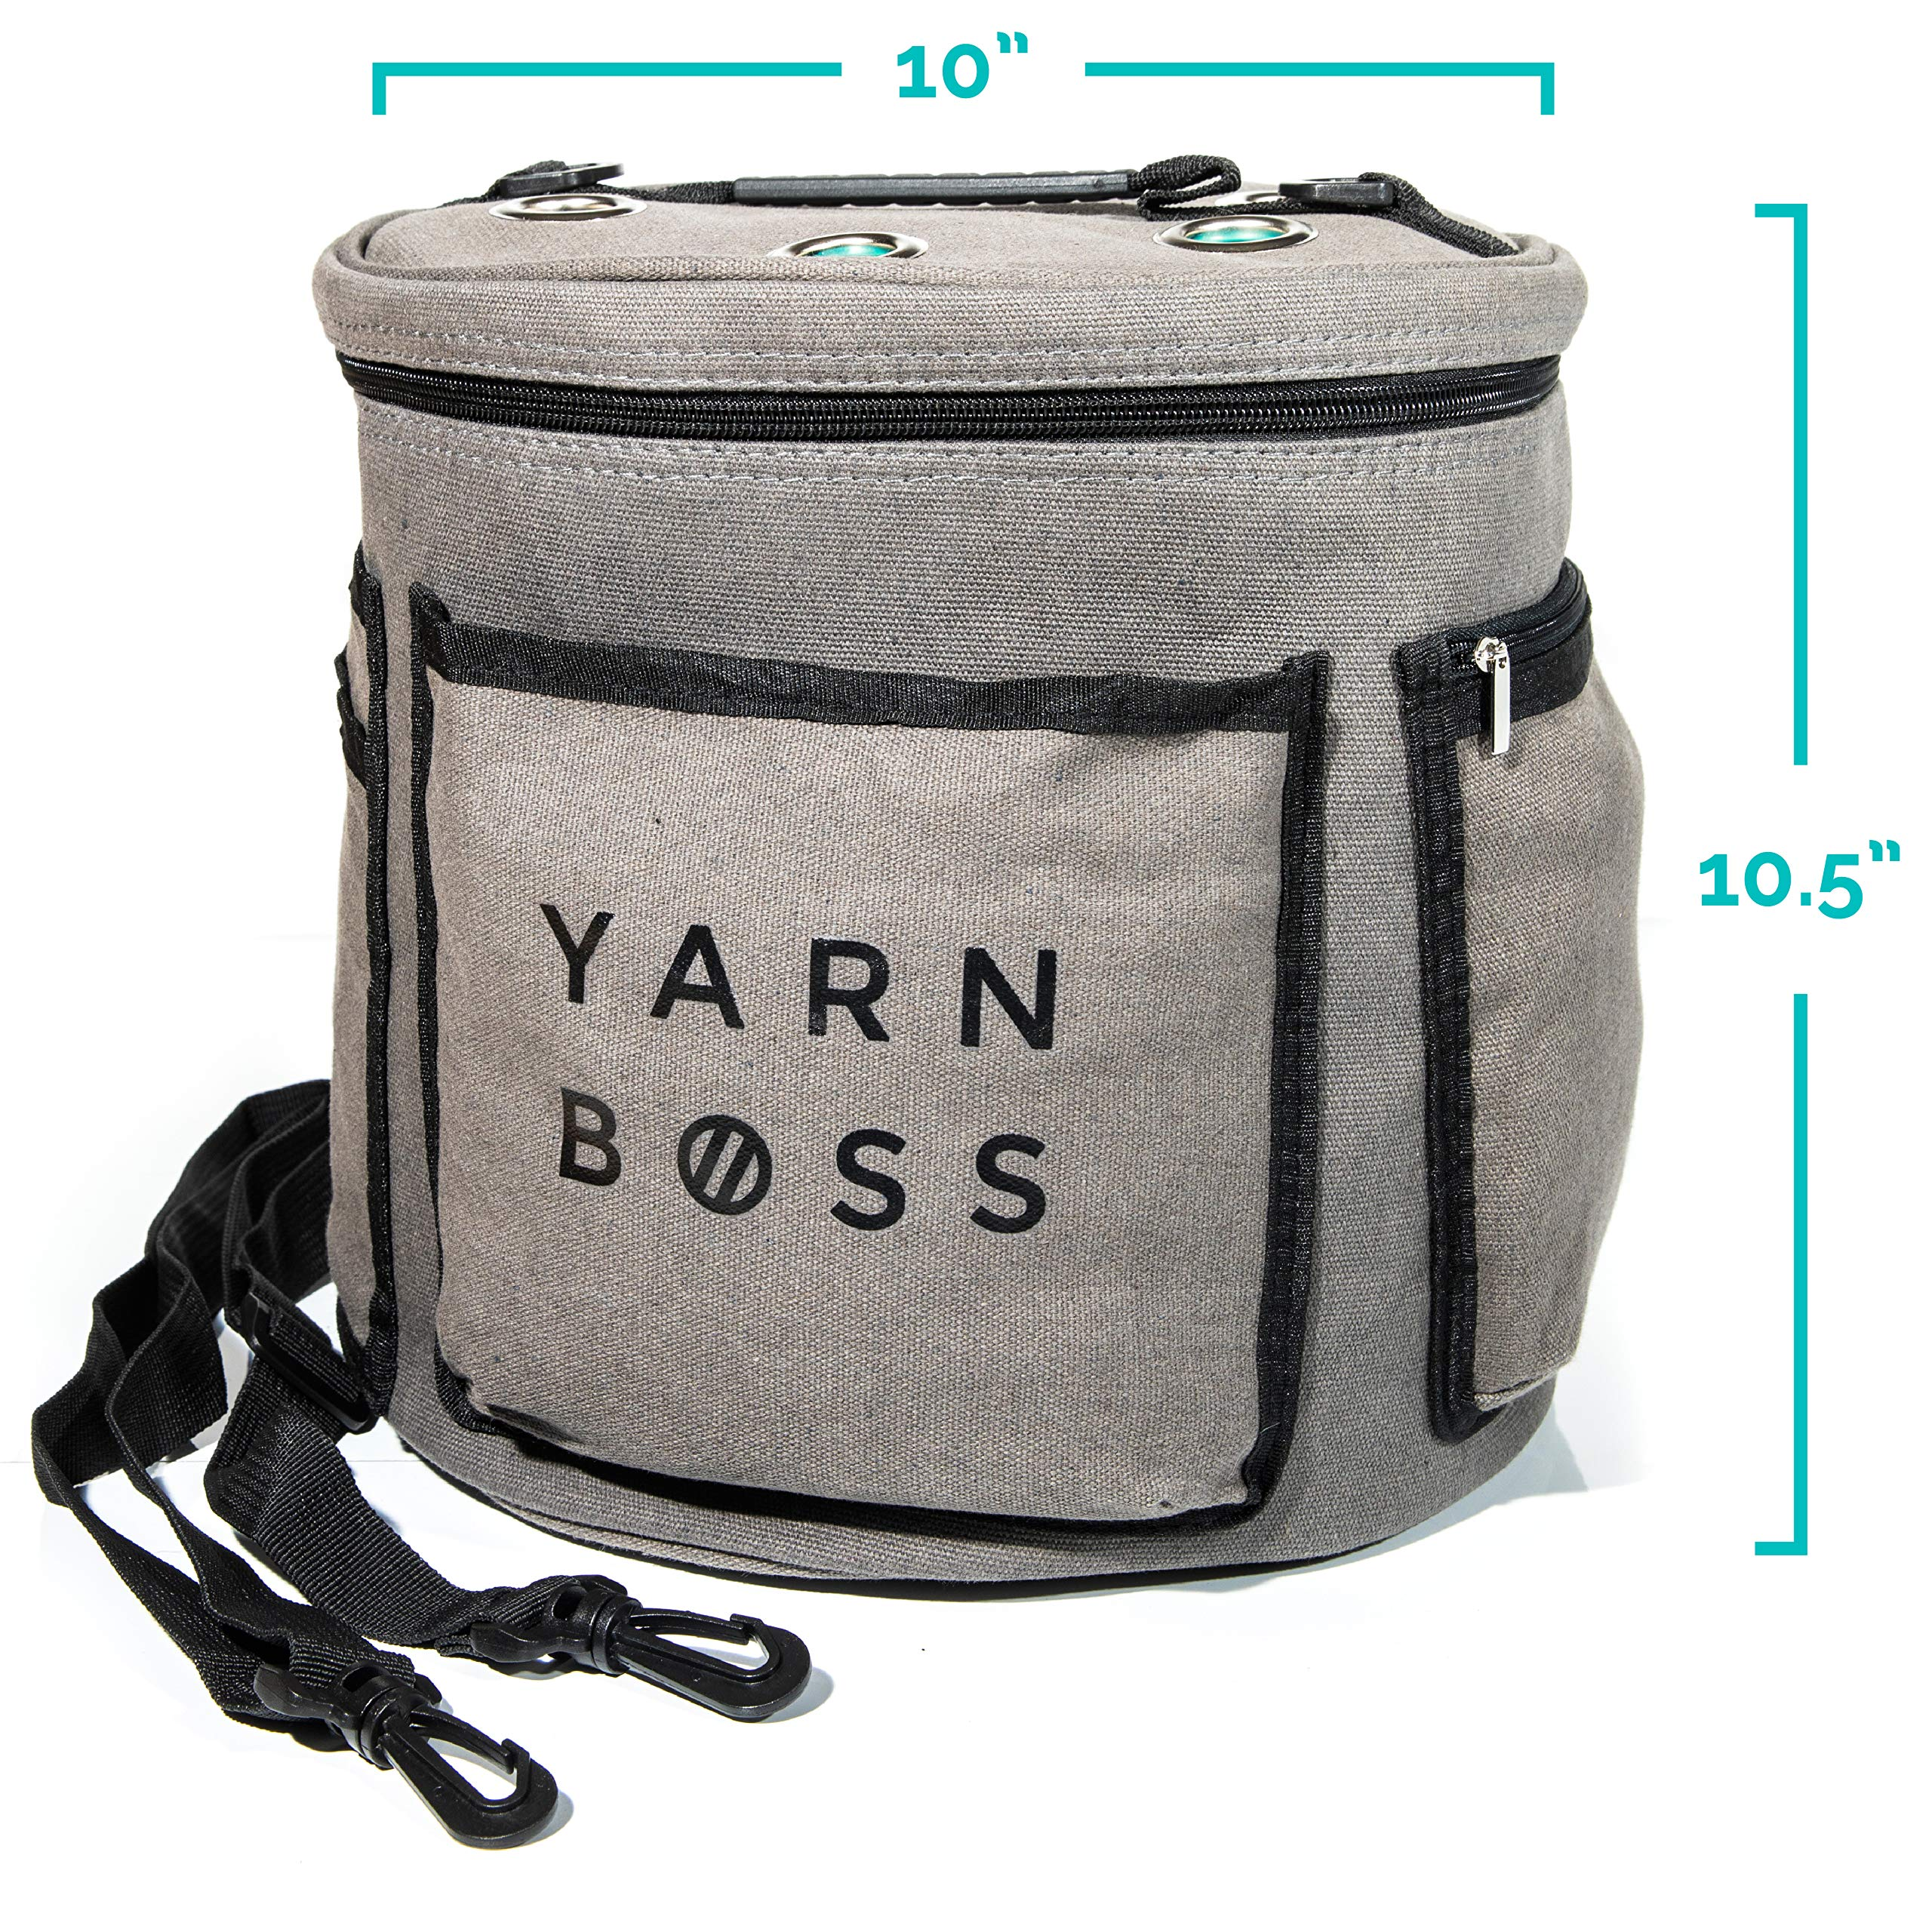 Yarn Boss Yarn Bag, Travel With Yarn and all Notions - Yarn Storage To Organize Multiple Projects and Keep Your Yarn Safe and Clean - Wide Grommets Stop Tangling for Best Crochet Bag or Knitting Bag by Yarn Boss (Image #8)